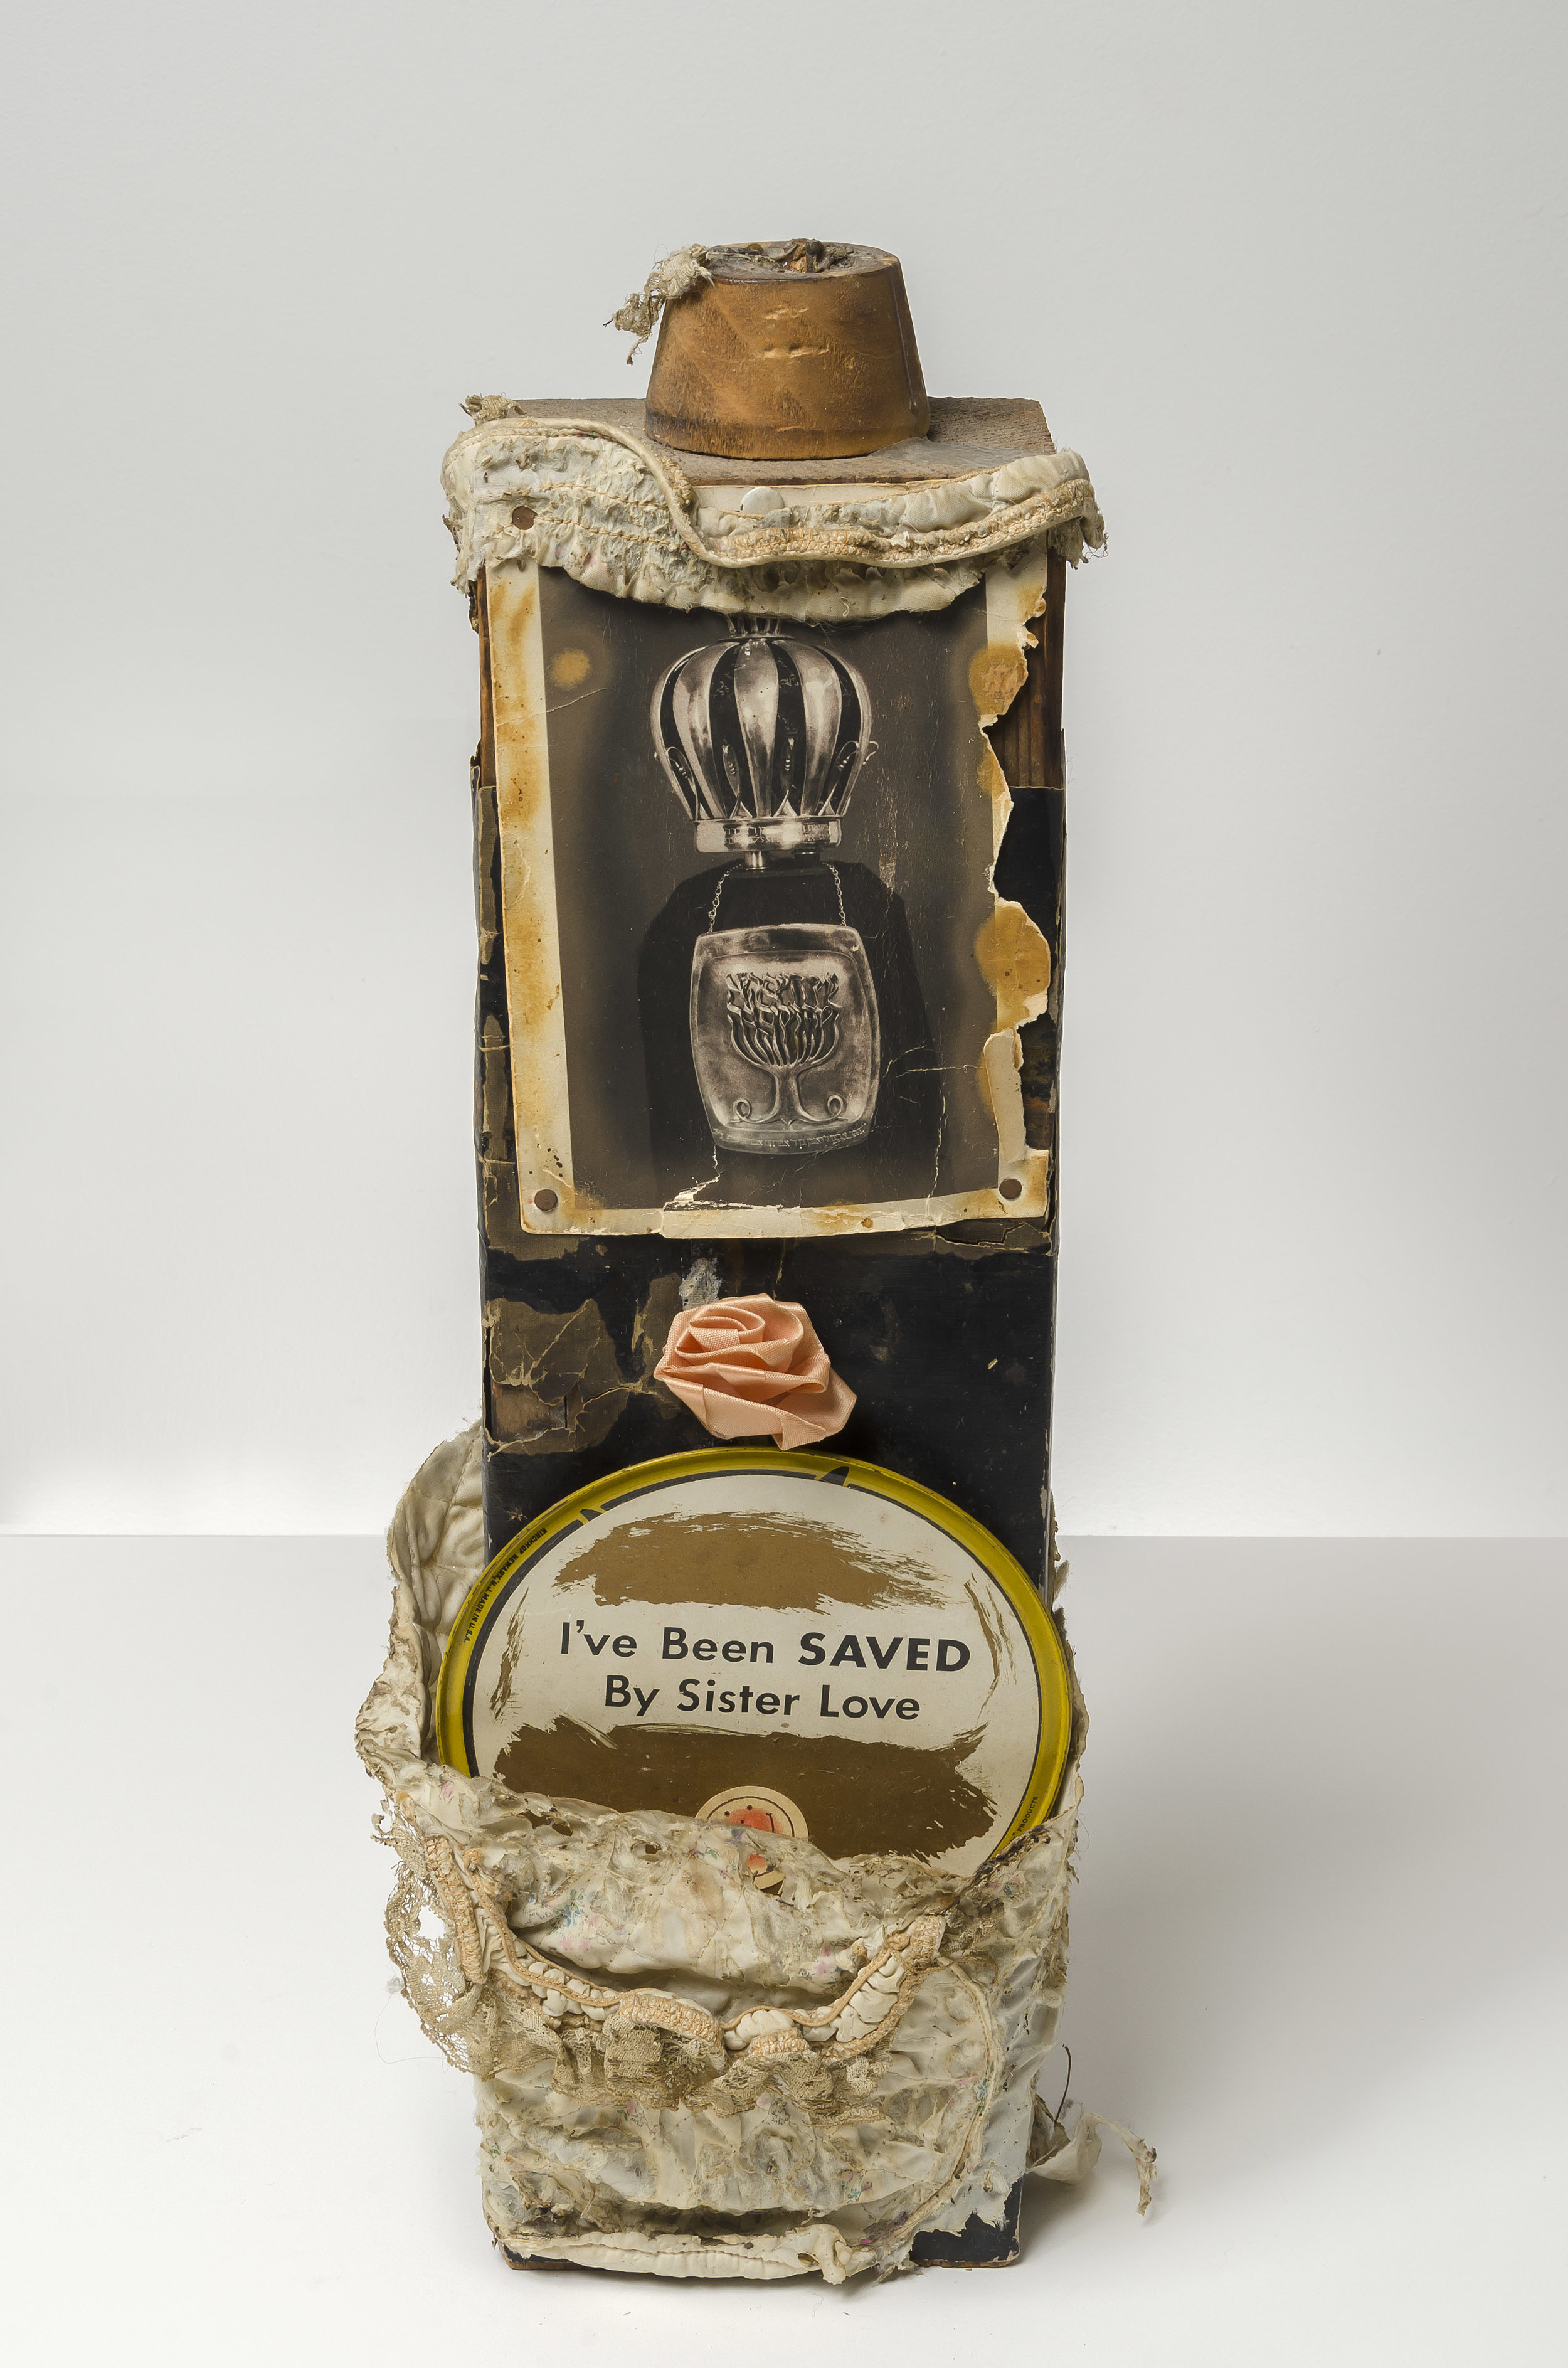 I've Been Saved by Sister Love , c. 1960  mixed media sculpture 7 x 5 1/2 x 20 1/4 inches; 17.8 x 14 x 51.4